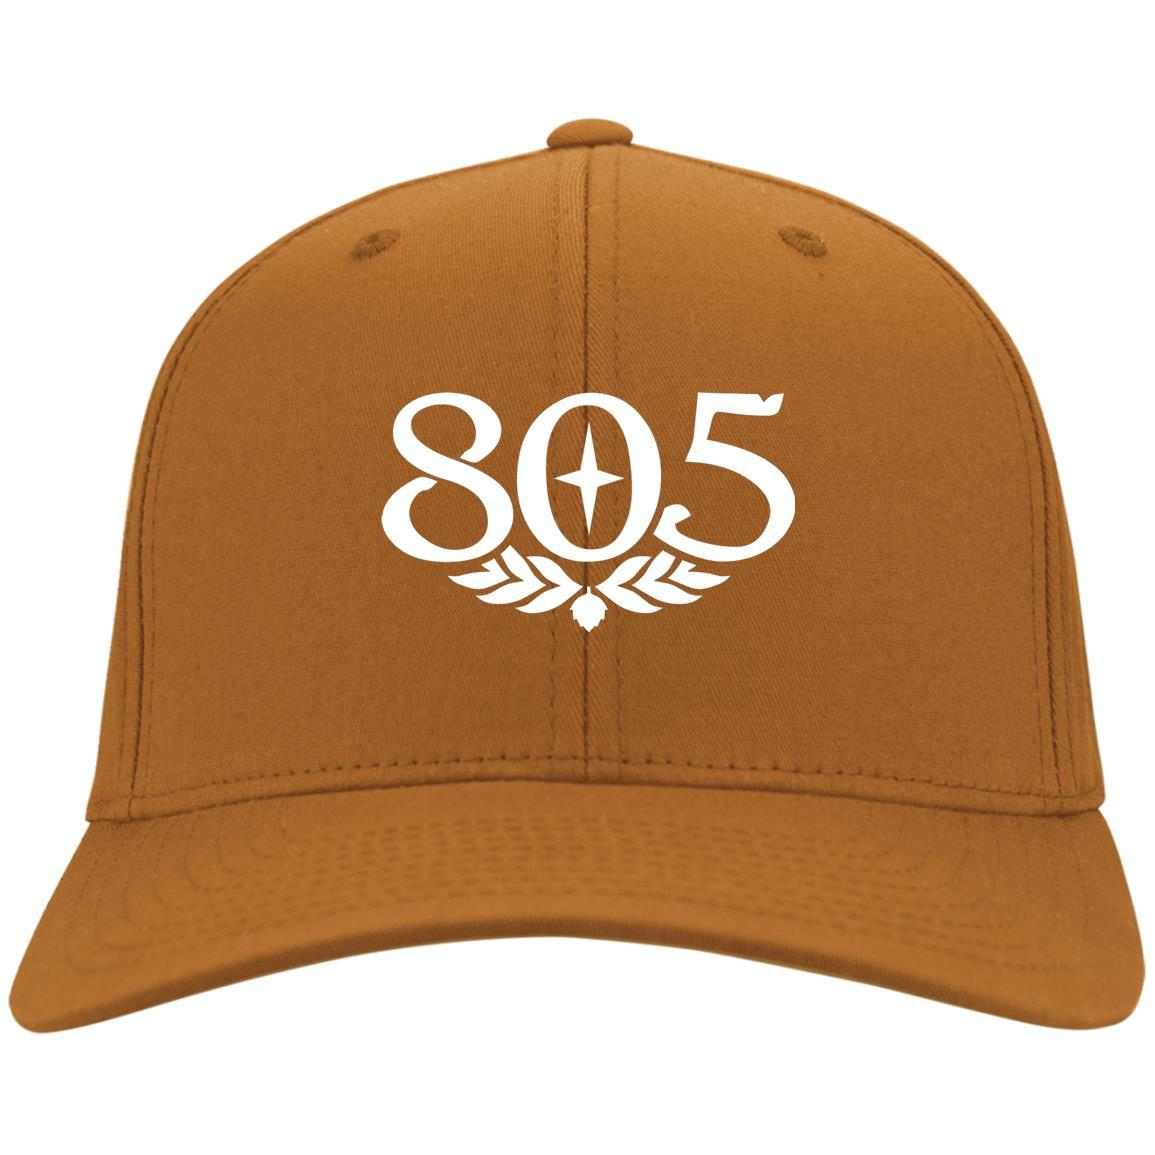 805 Beer - Port & Co. Twill Cap Texas Orange